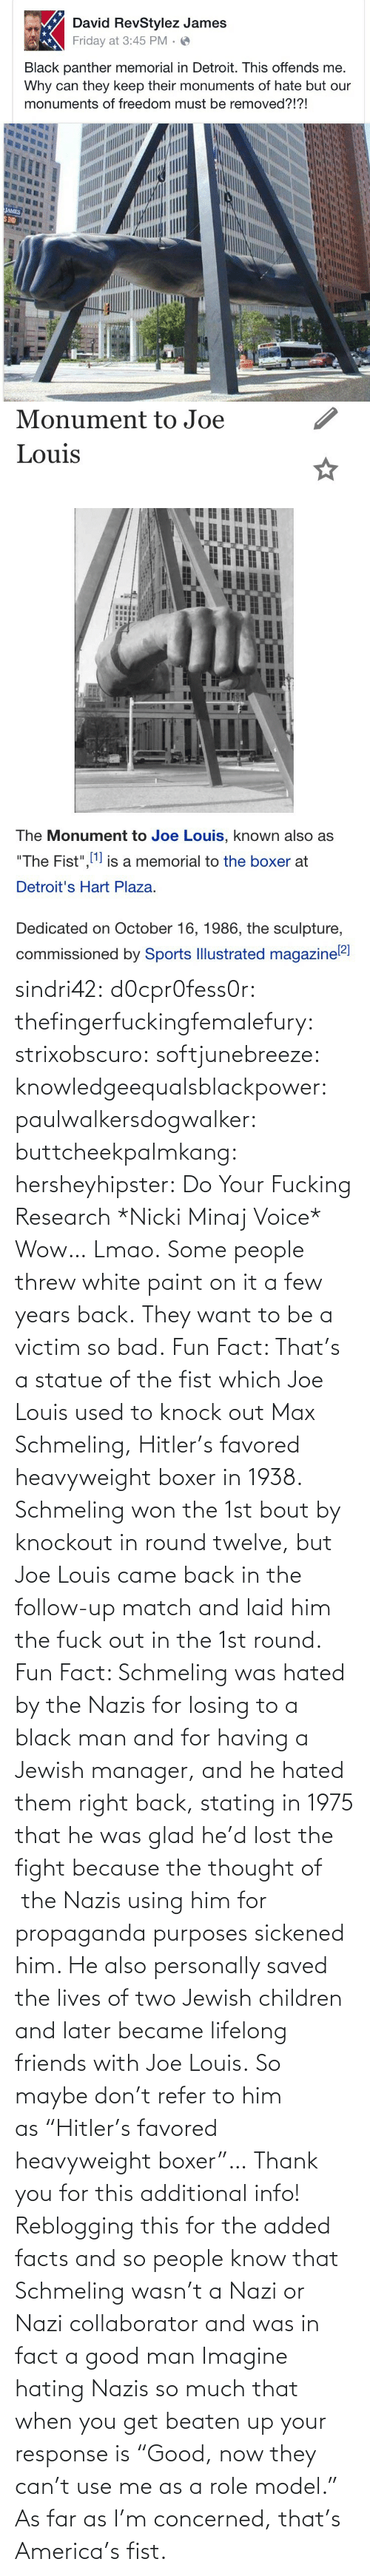 "In The: sindri42:  d0cpr0fess0r:  thefingerfuckingfemalefury:  strixobscuro:  softjunebreeze:  knowledgeequalsblackpower:  paulwalkersdogwalker:   buttcheekpalmkang:   hersheyhipster:  Do Your Fucking Research *Nicki Minaj Voice*    Wow… Lmao.   Some people threw white paint on it a few years back.   They want to be a victim so bad.  Fun Fact: That's a statue of the fist which Joe Louis used to knock out Max Schmeling, Hitler's favored heavyweight boxer in 1938. Schmeling won the 1st bout by knockout in round twelve, but Joe Louis came back in the follow-up match and laid him the fuck out in the 1st round.  Fun Fact: Schmeling was hated by the Nazis for losing to a black man and for having a Jewish manager, and he hated them right back, stating in 1975 that he was glad he'd lost the fight because the thought of  the Nazis using him for propaganda purposes sickened him. He also personally saved the lives of two Jewish children and later became lifelong friends with Joe Louis. So maybe don't refer to him as ""Hitler's favored heavyweight boxer""…  Thank you for this additional info! Reblogging this for the added facts and so people know that Schmeling wasn't a Nazi or Nazi collaborator and was in fact a good man   Imagine hating Nazis so much that when you get beaten up your response is ""Good, now they can't use me as a role model.""  As far as I'm concerned, that's America's fist."